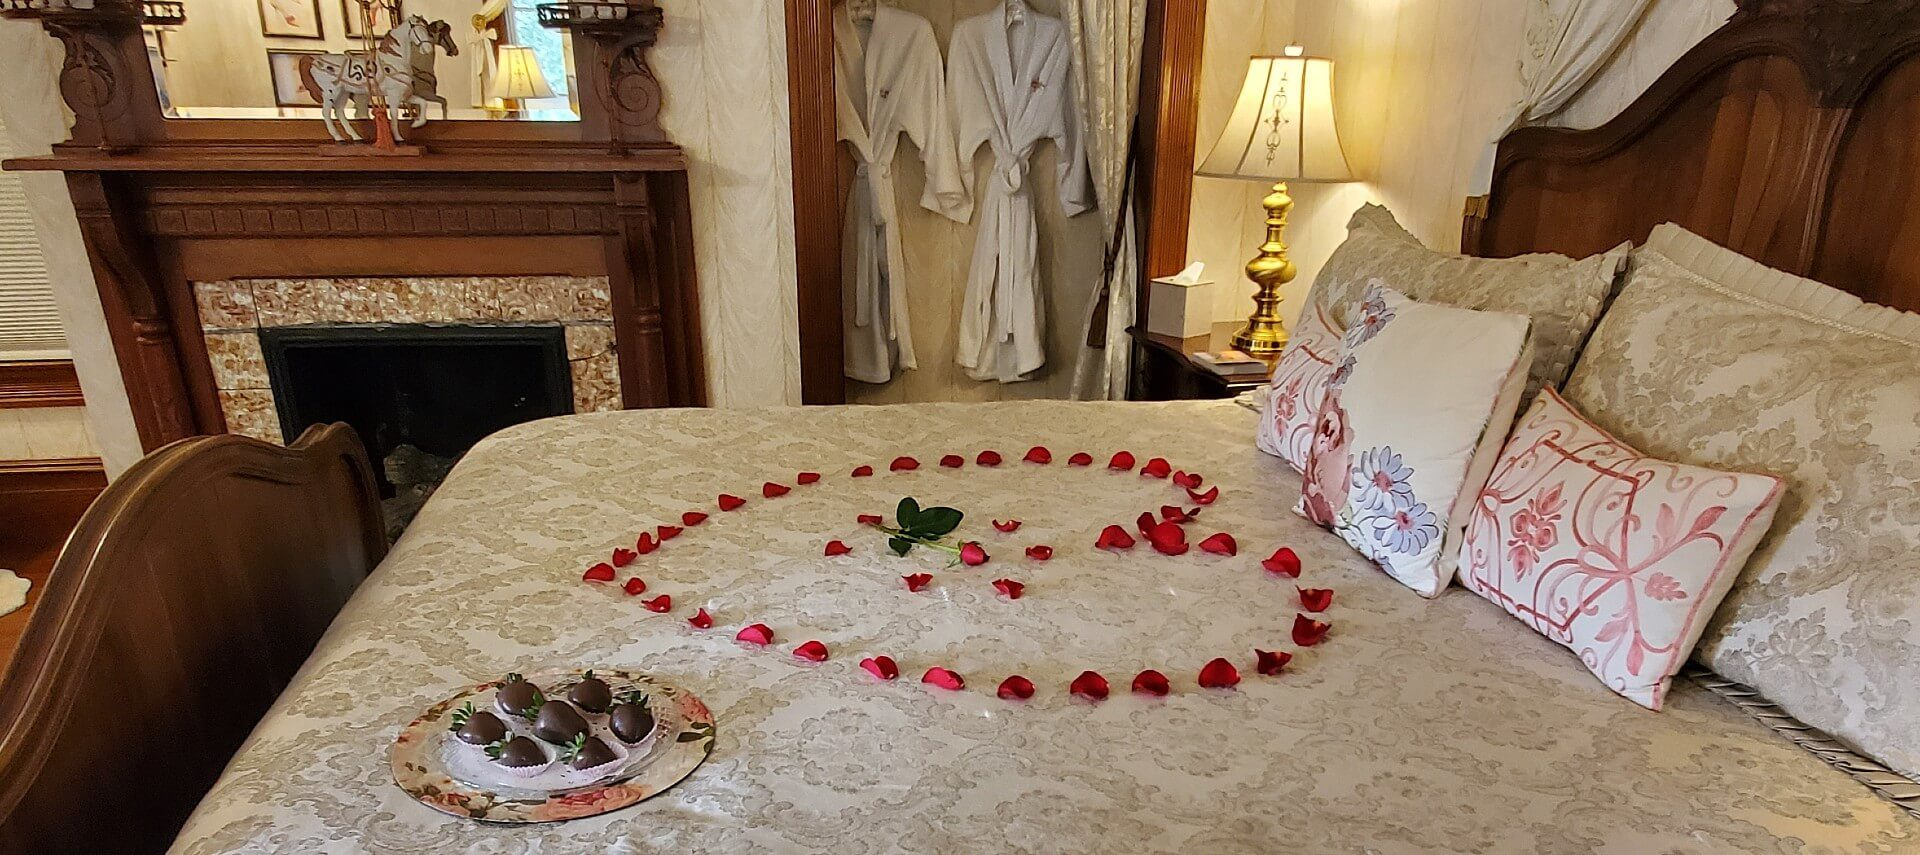 Guest room with dark wood furniture, fireplace and rose petals in the shape of a heart on the bed.